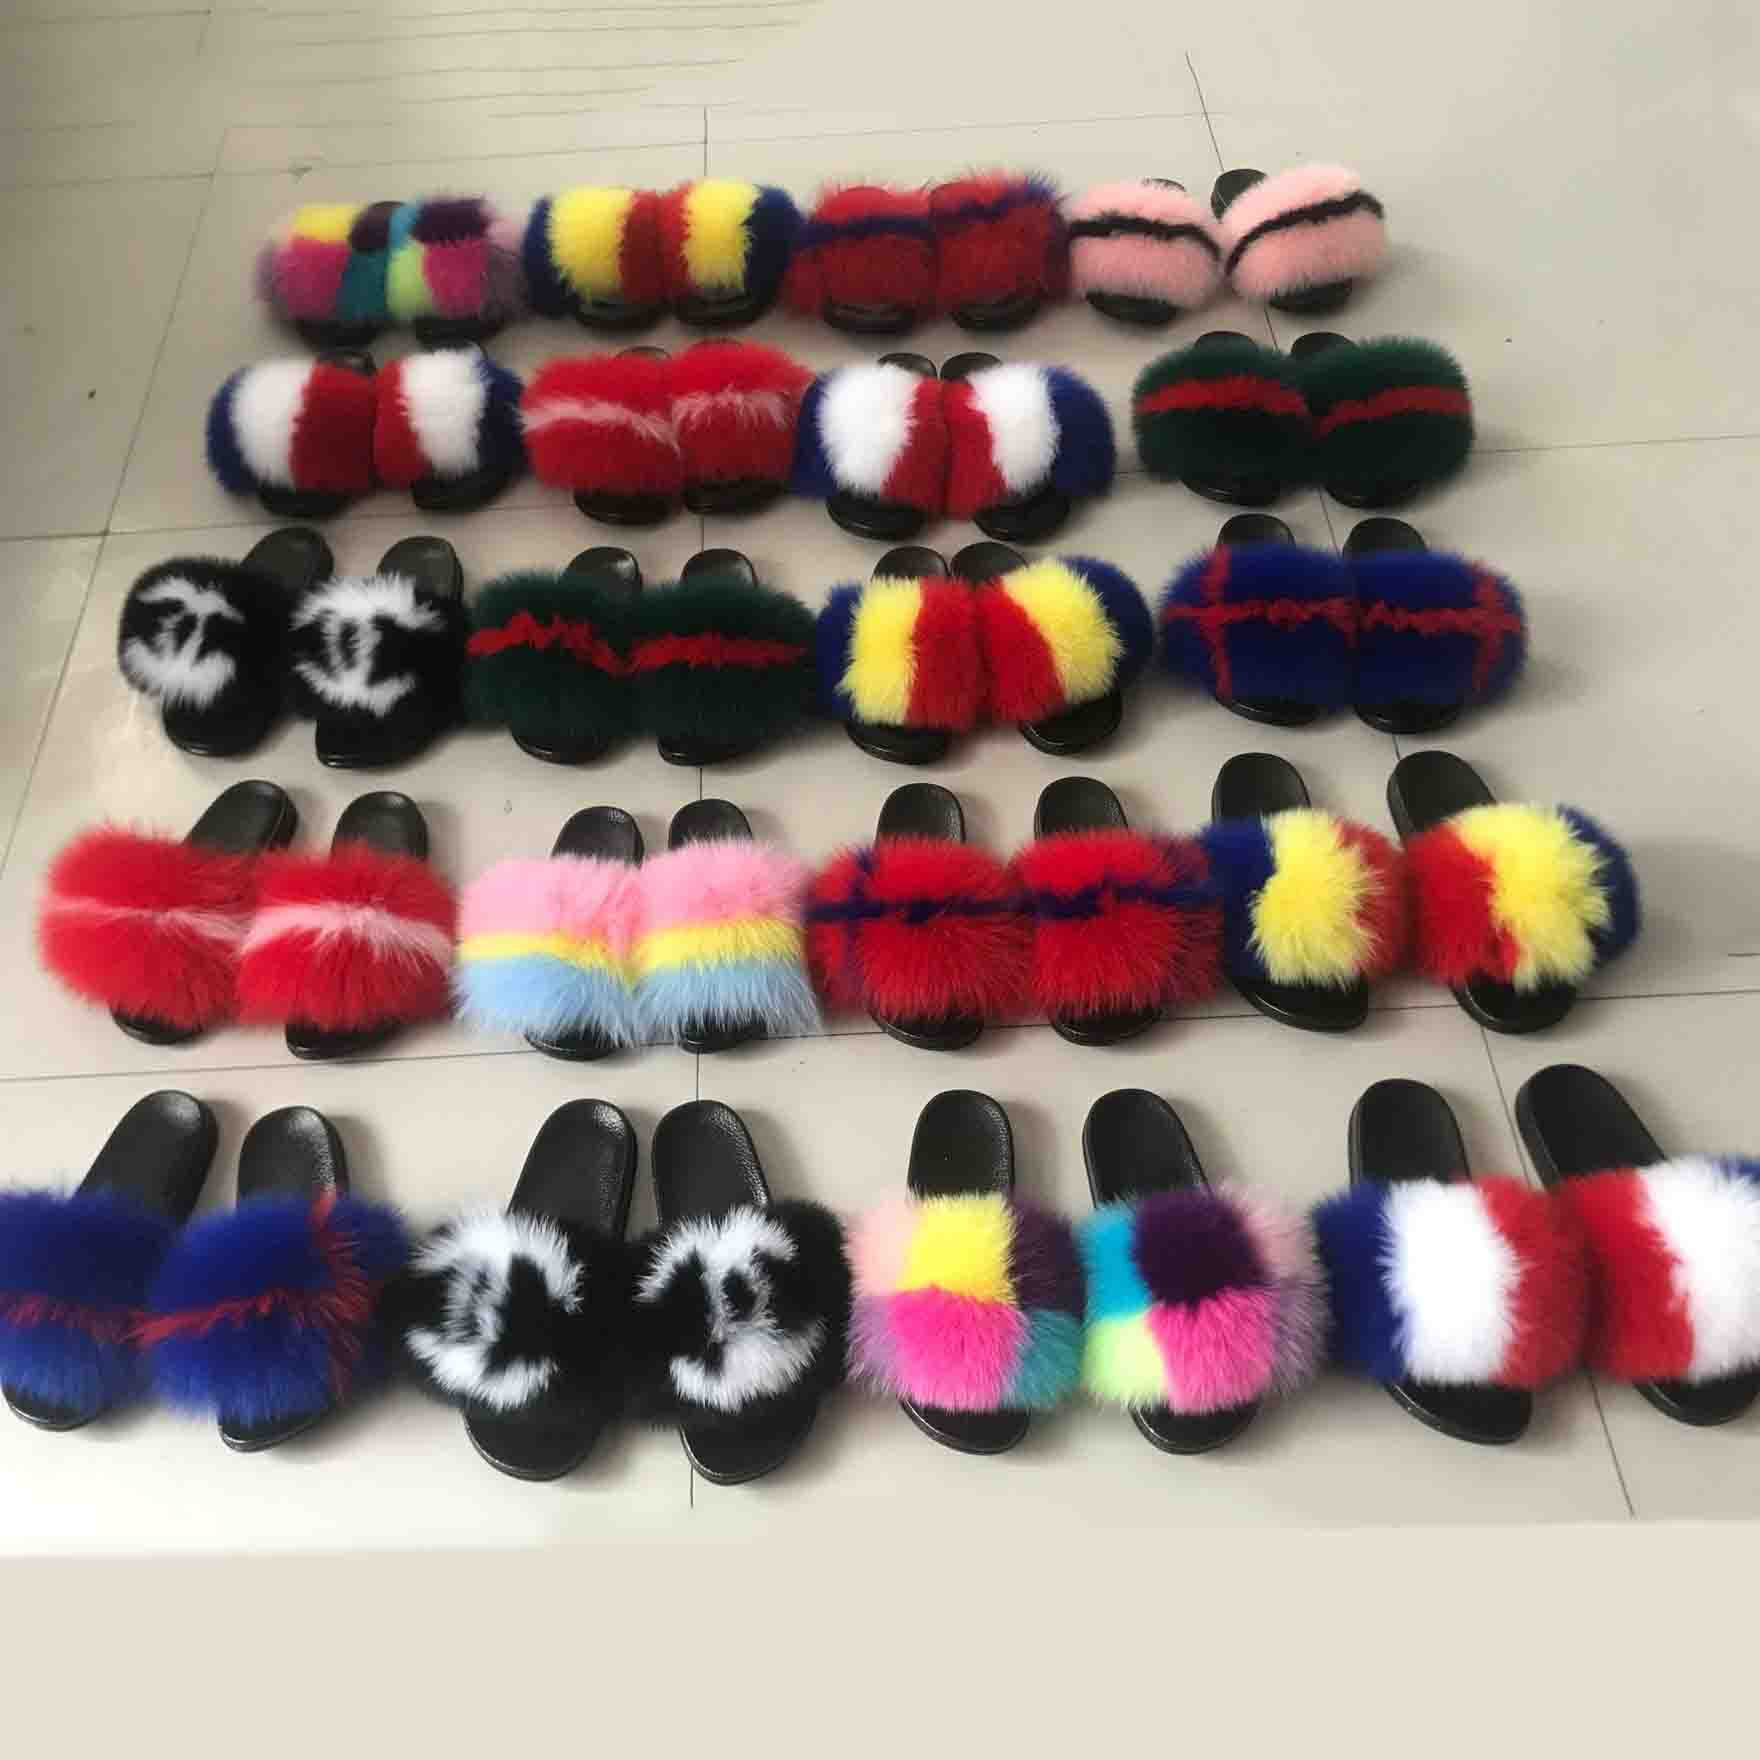 100% real fox fur slippers female fur slippers rainbow shoes cute fur flip flops women travel furry shoes L 085#|Slippers| - AliExpress